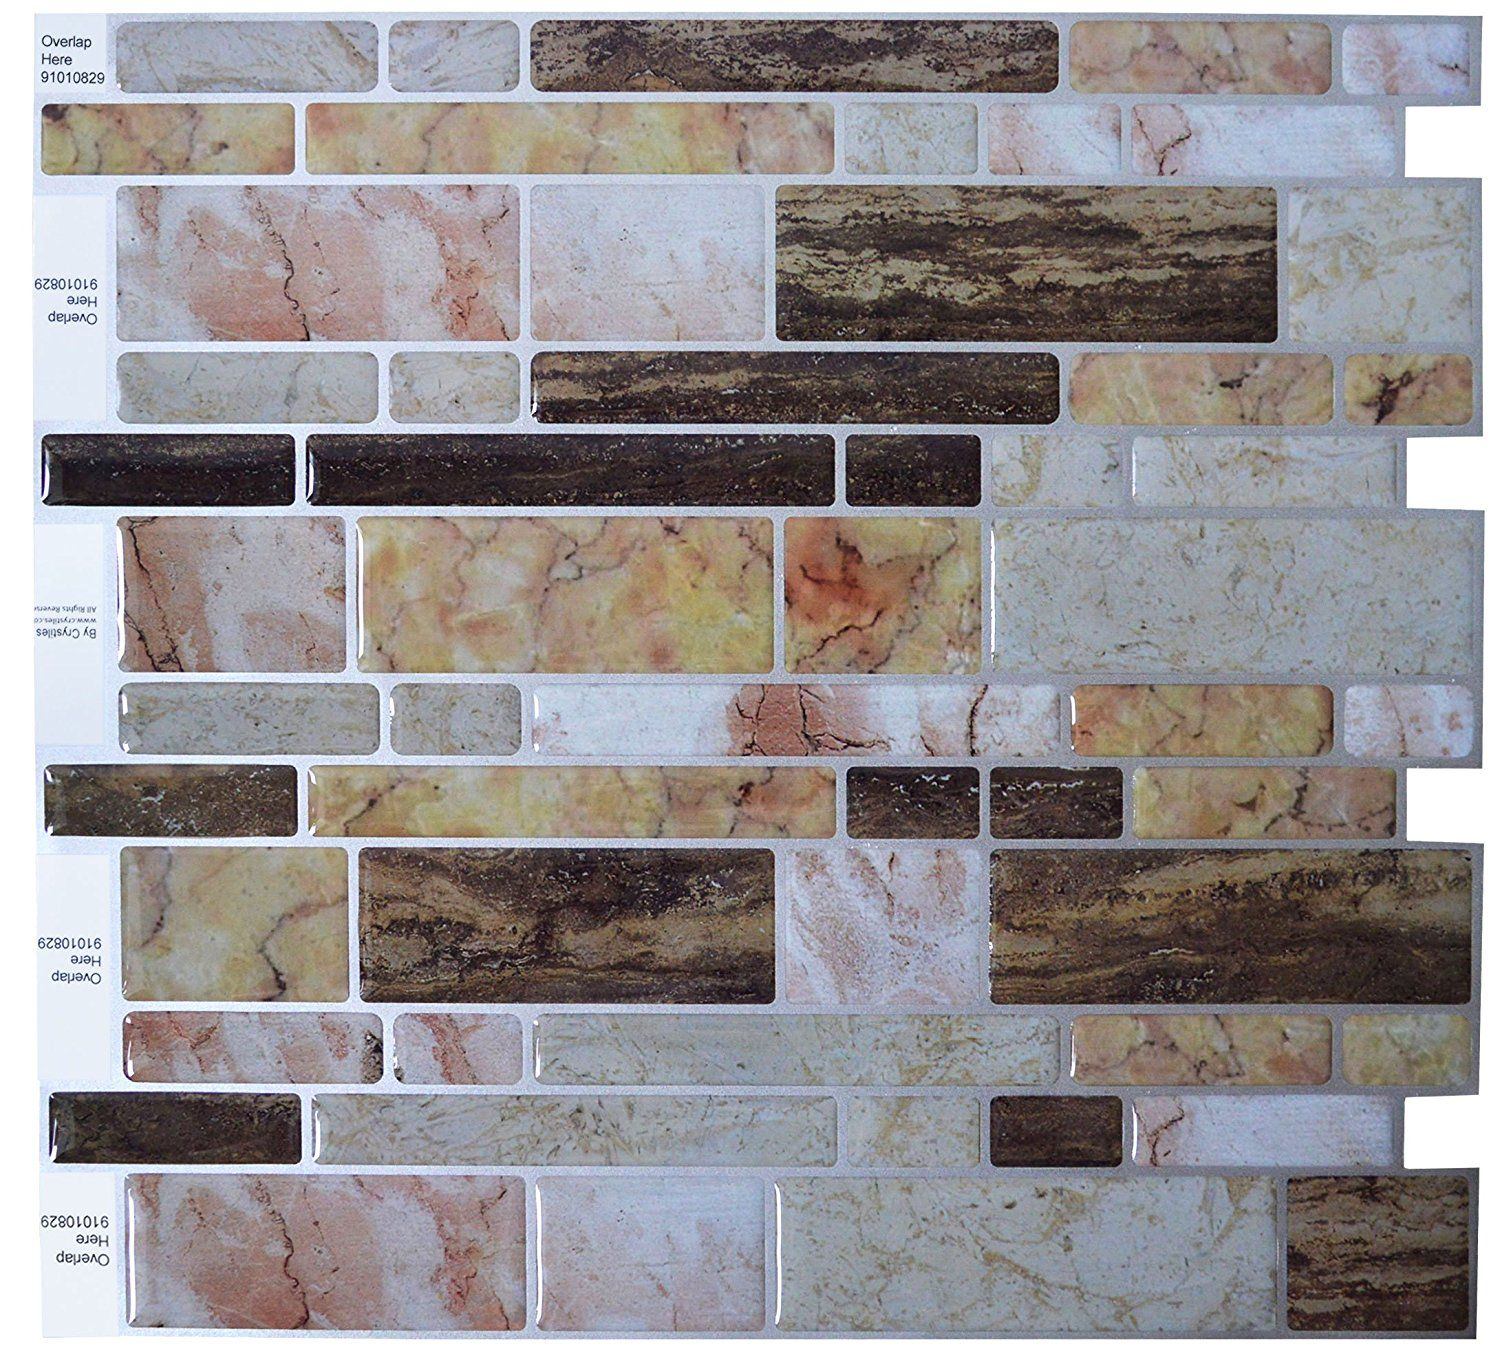 Crystilesa Peel And Stick Self Adhesive Vinyl Wall Tiles Multi Color Marble Style Itemno 91010829 10a X Vinyl Wall Tiles Diy Backsplash Tile Backsplash